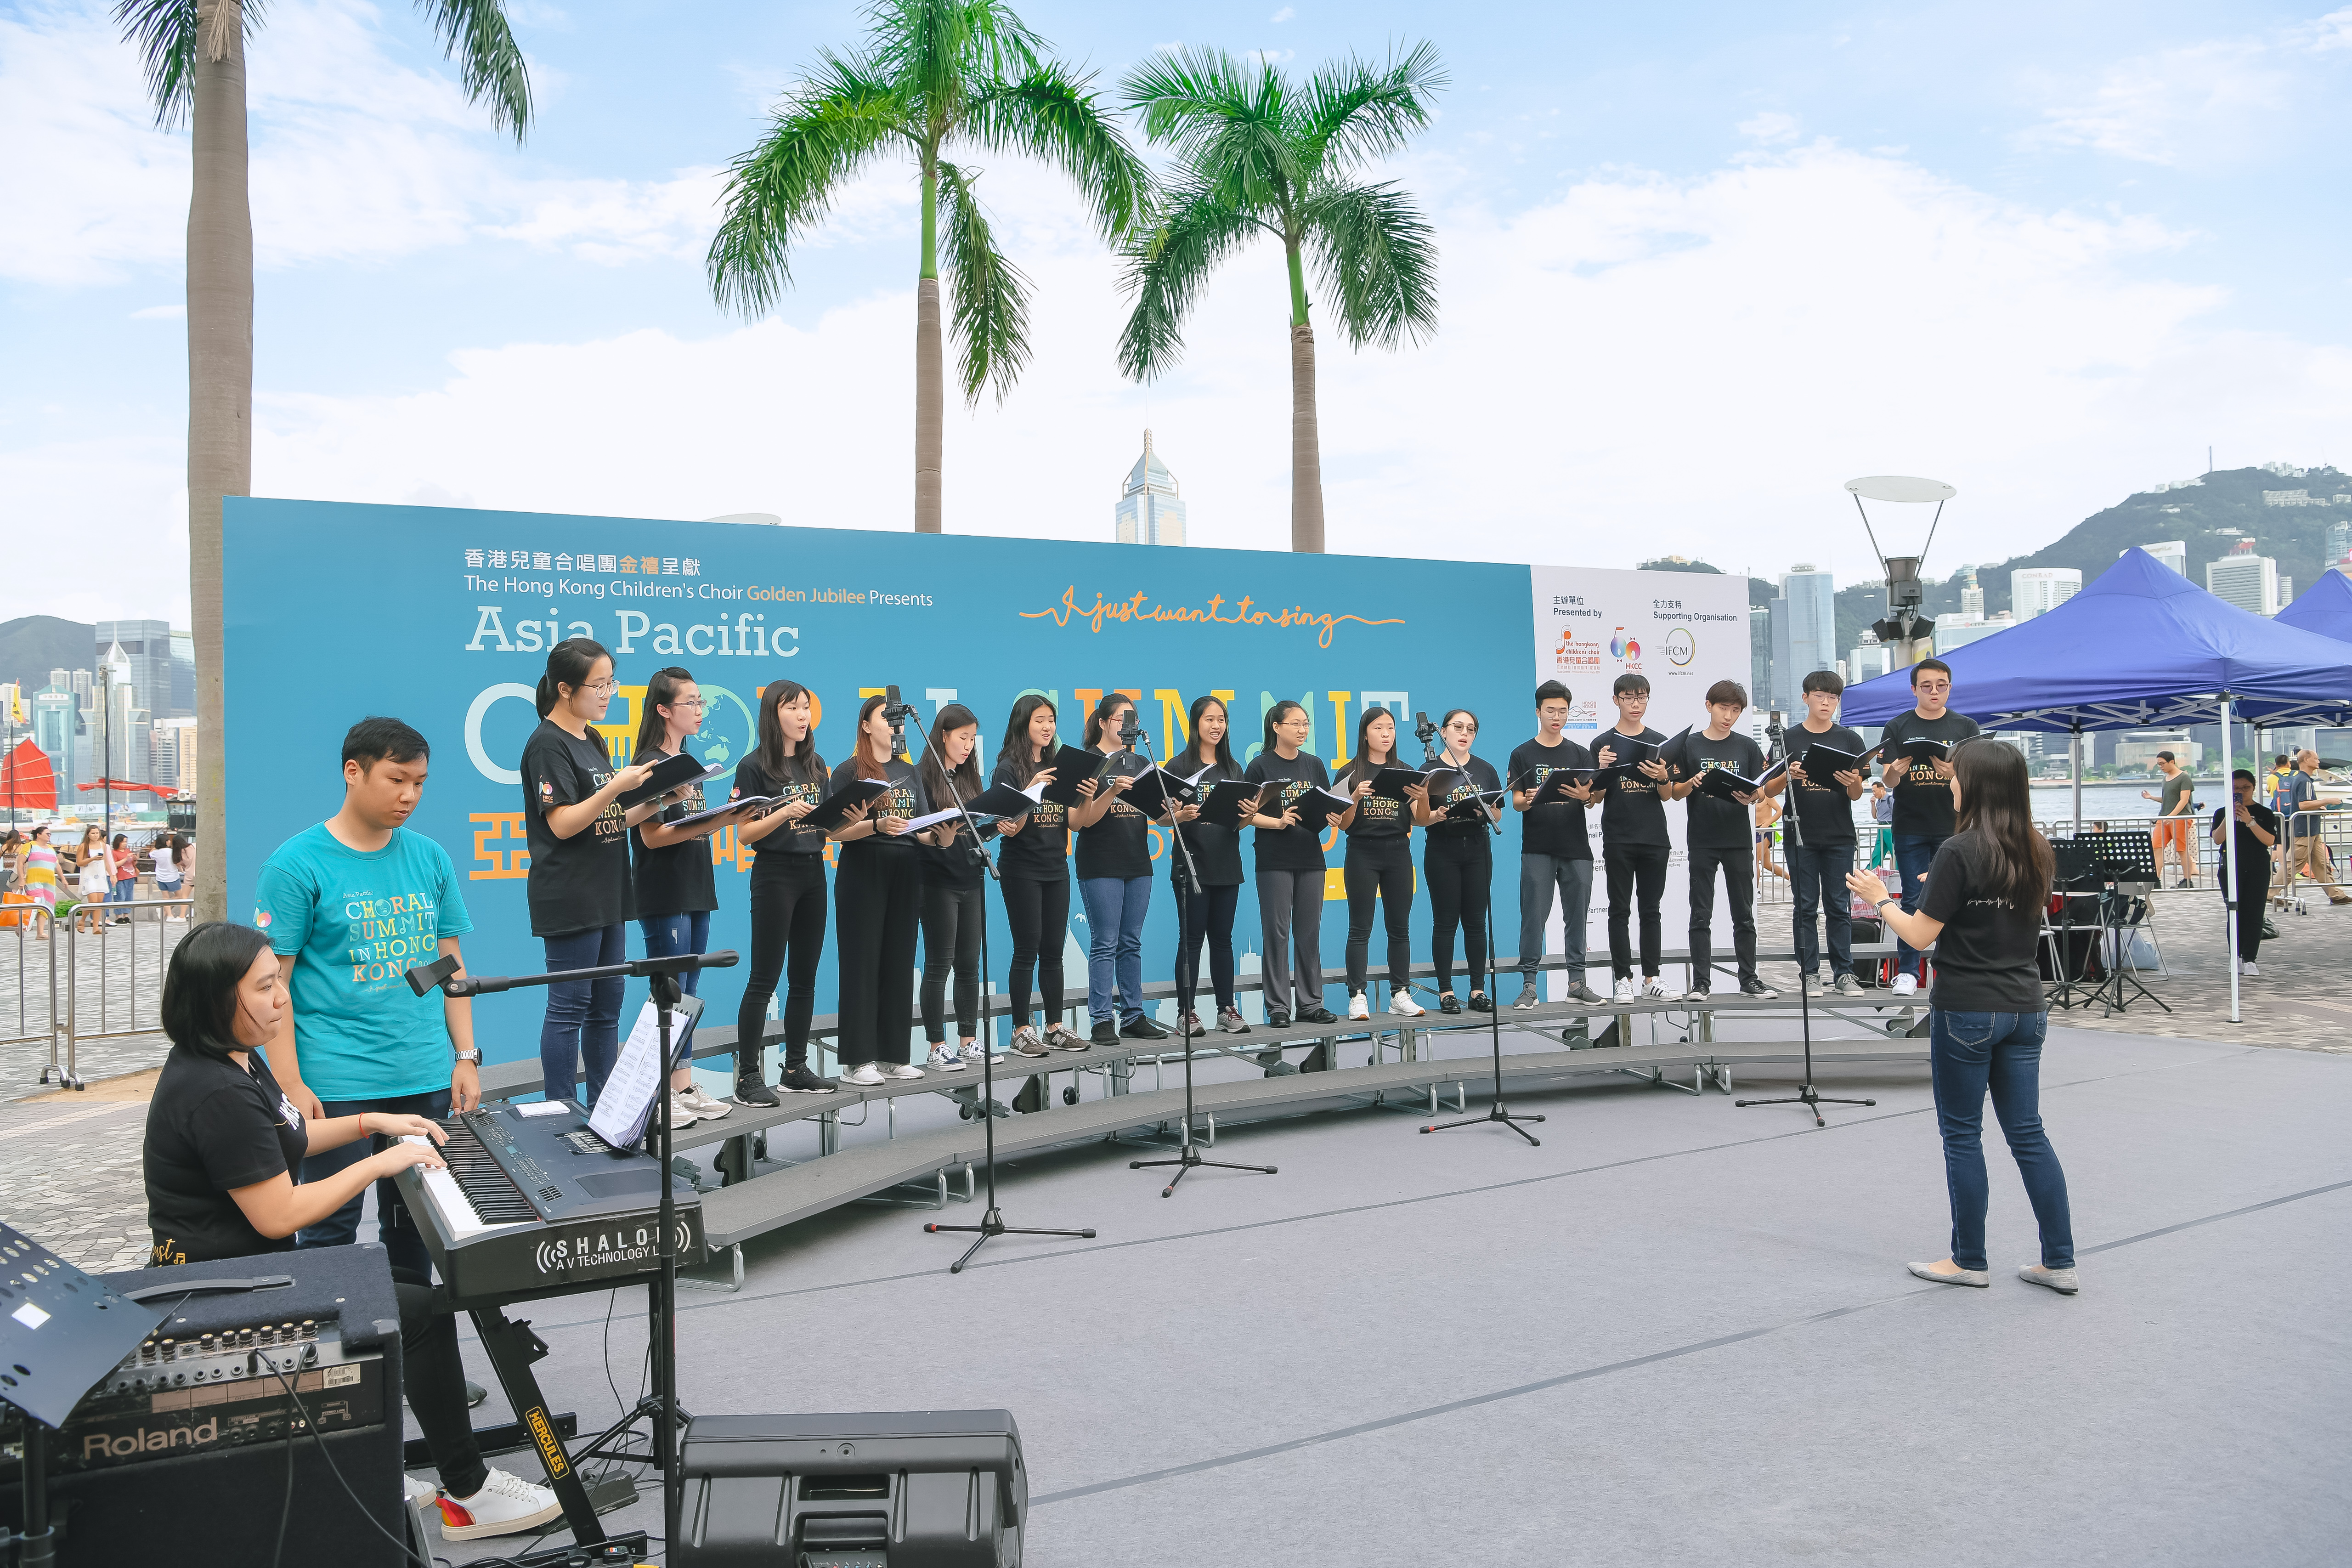 https://hkcchoir.org.hk/sites/default/files/chamber_youth_2019_choral_summit.jpg